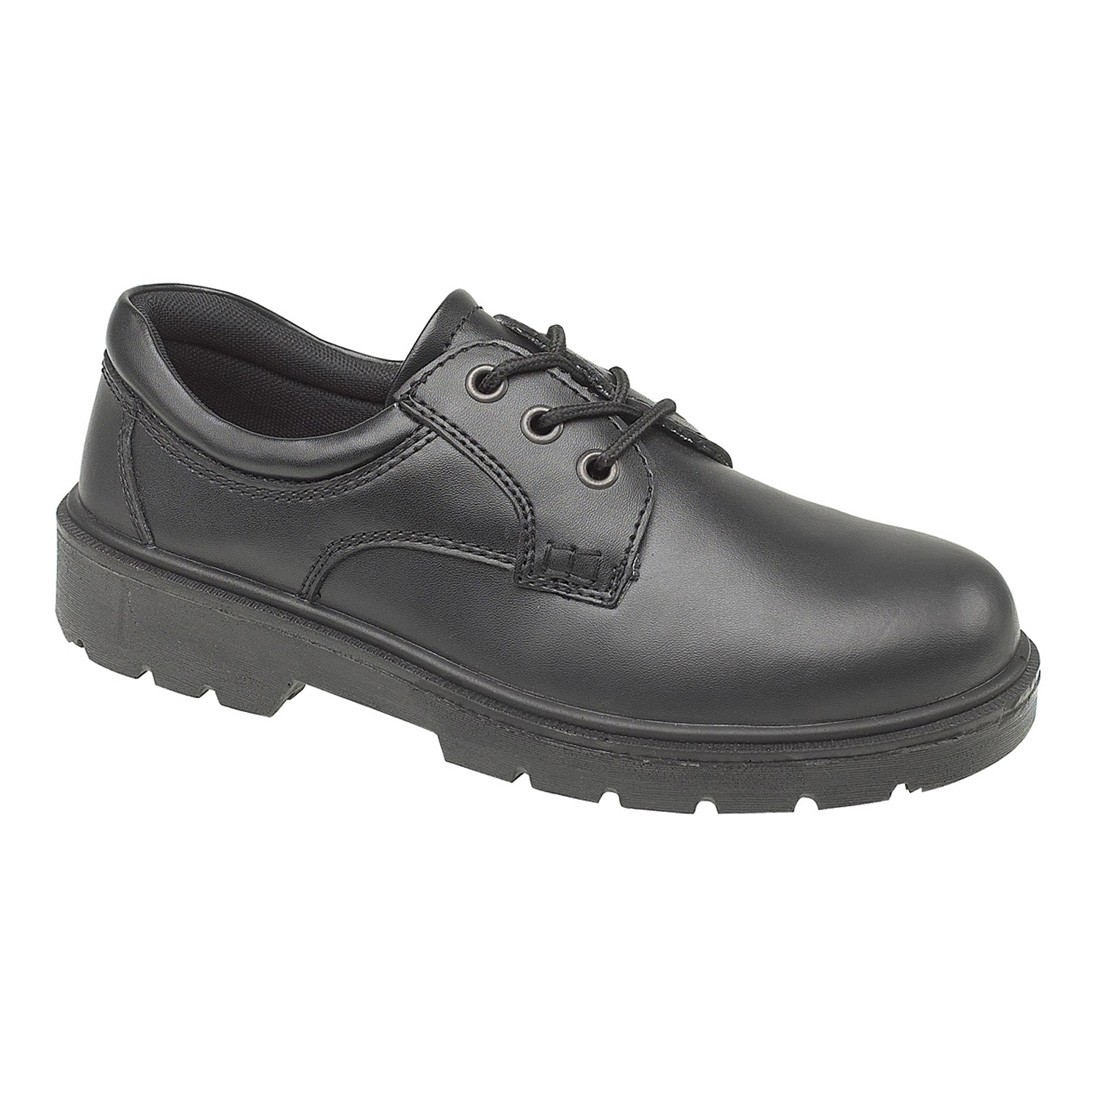 Ambler Safety Black Smooth Mono Leather Gibson Fs41 Unisex Work Shoes